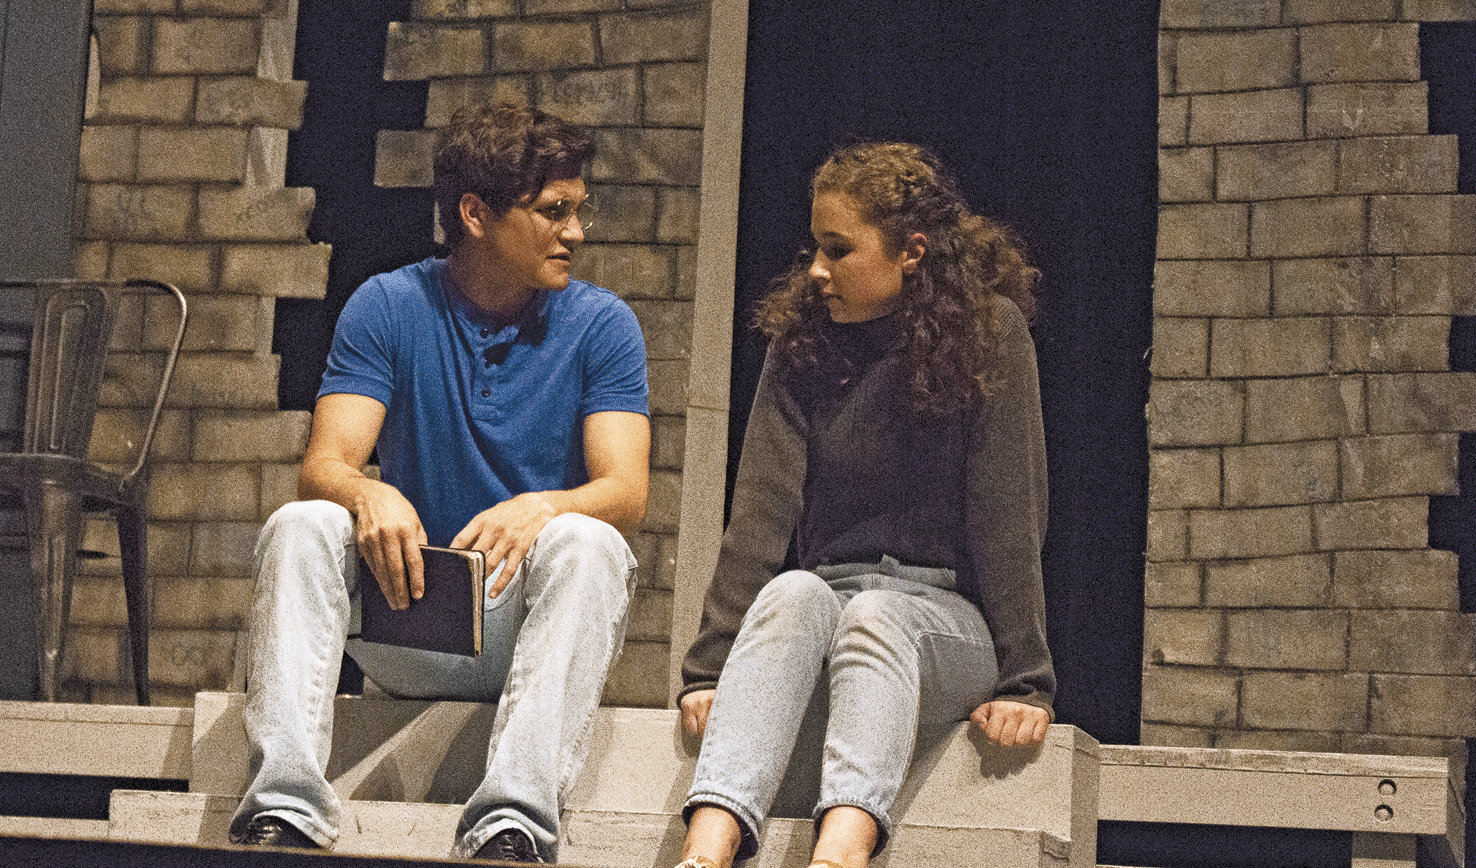 """NAIL THE ROLE: Sophomore Maia Gerdes plays Catherine and senior Stephen Achilles plays Hal in the senior one act """"Proof"""". The play, directed by senior Grace Clark, tells the story of Catherine's struggle with mental health after the death of her father."""